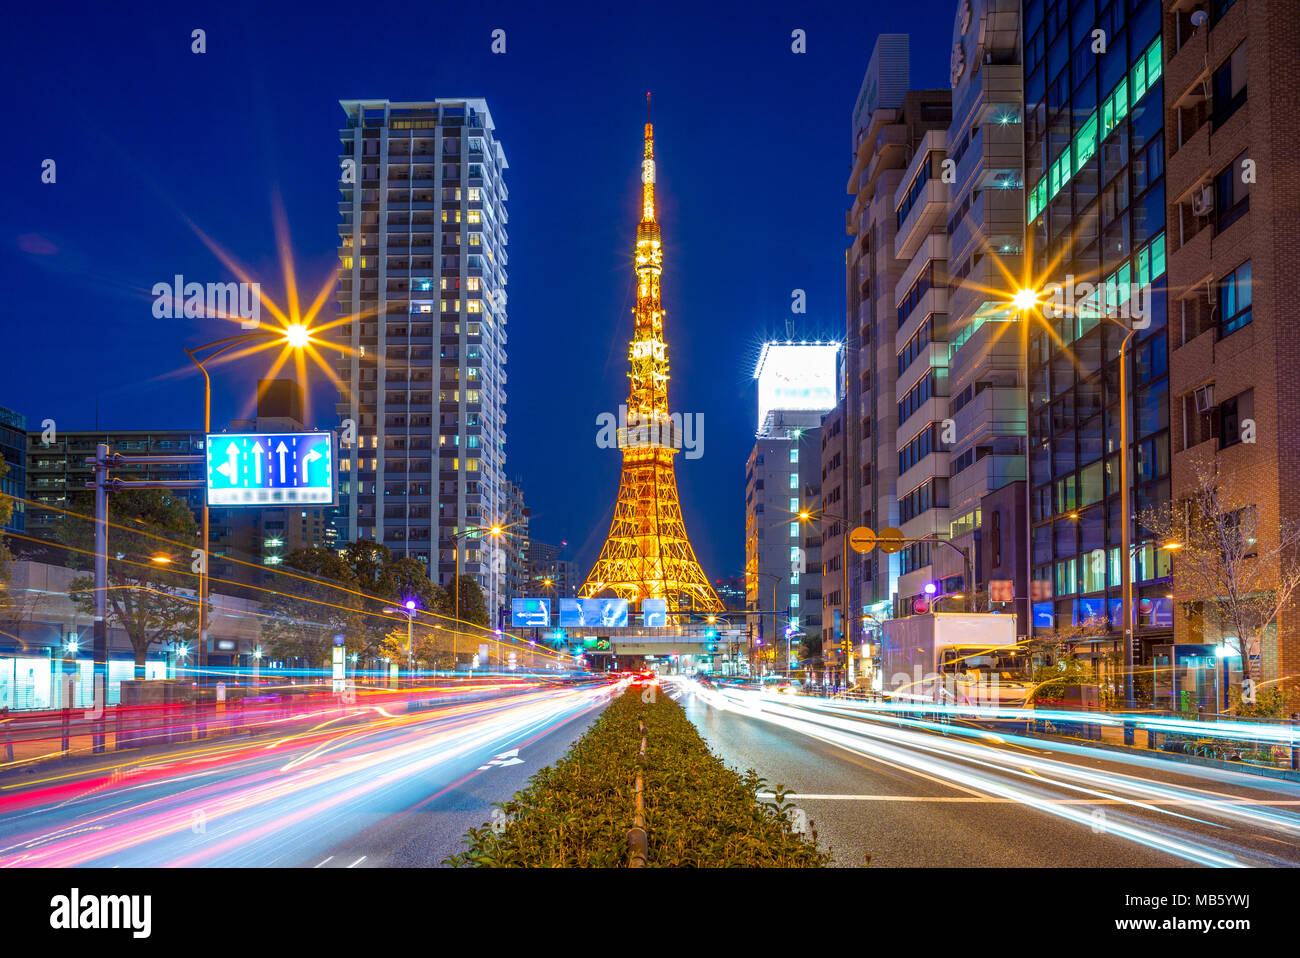 night view of Tokyo city, Japan - Stock Image